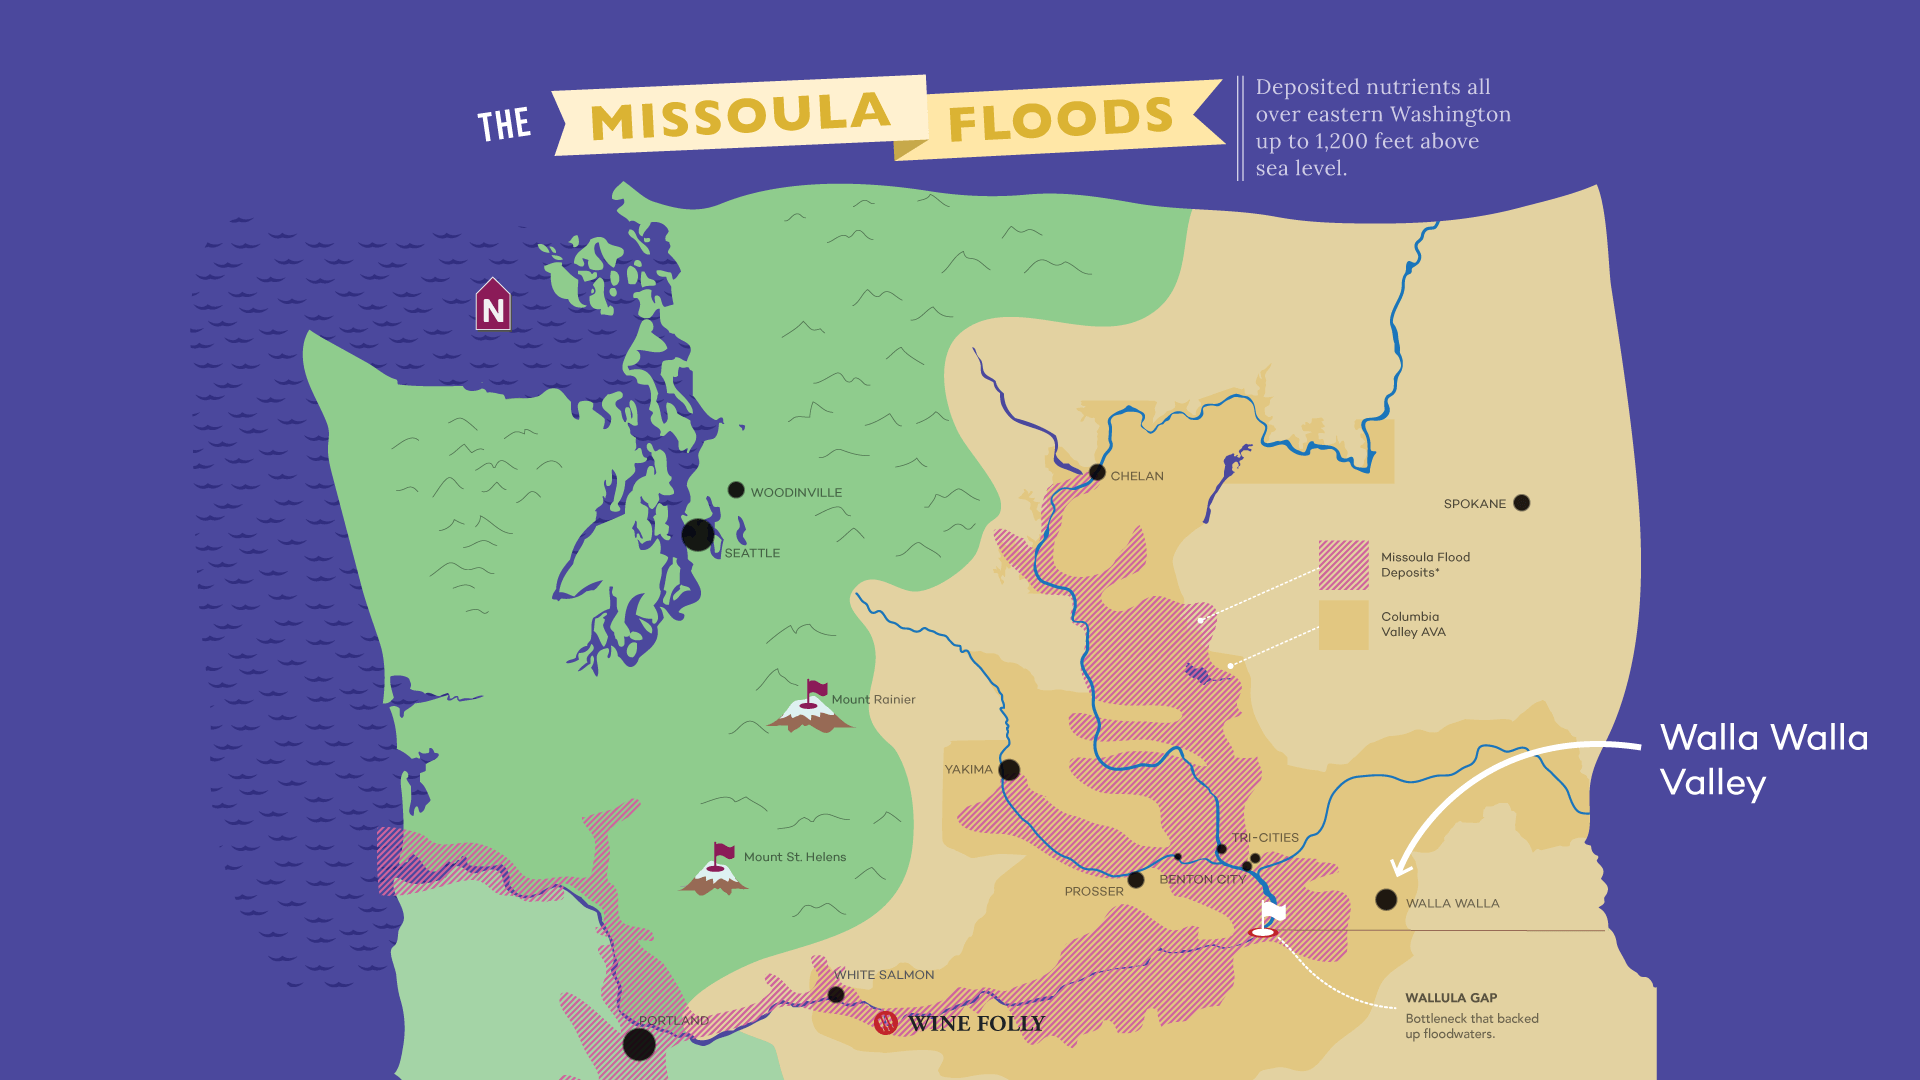 An infographic map of the Western US showing the area covered by the Missoula Floods, with Wall Walla identified prominently. The green and tan map is on an indigo background.